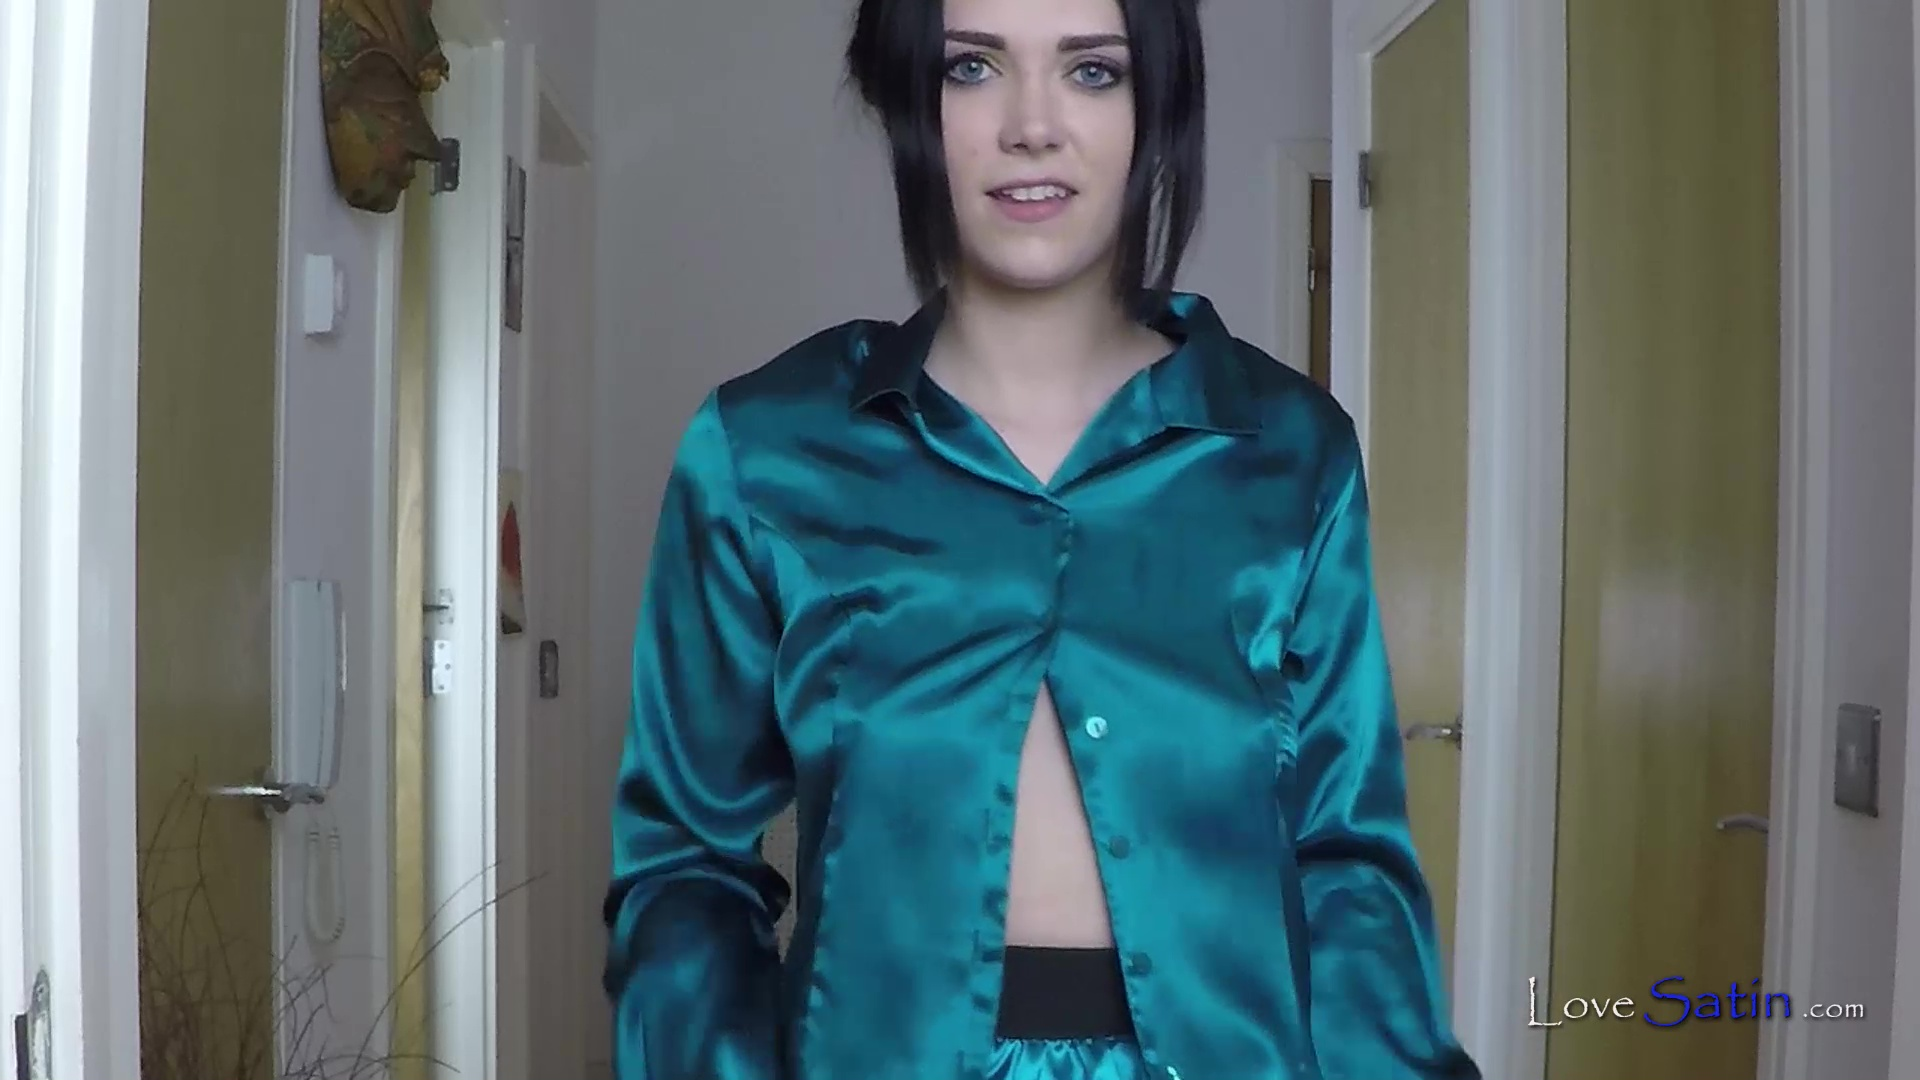 content/Summer/Summer-Teal-Tease-Video/1.jpg